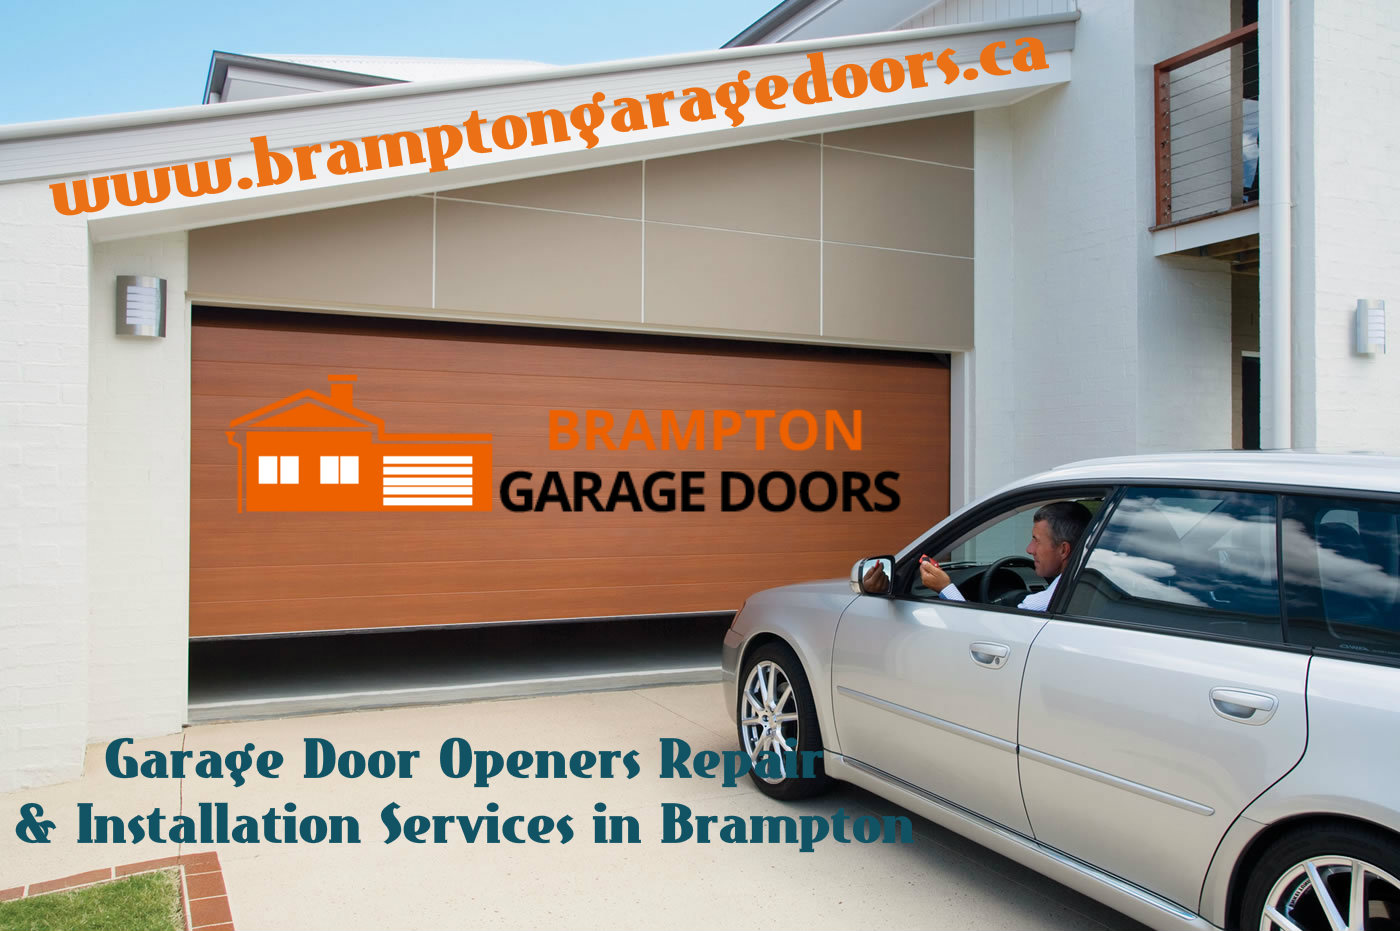 931 #A65725 Garage Door Openers Repair Installation Services In Brampton Free  picture/photo Garage Doors Openers Repair 38391400